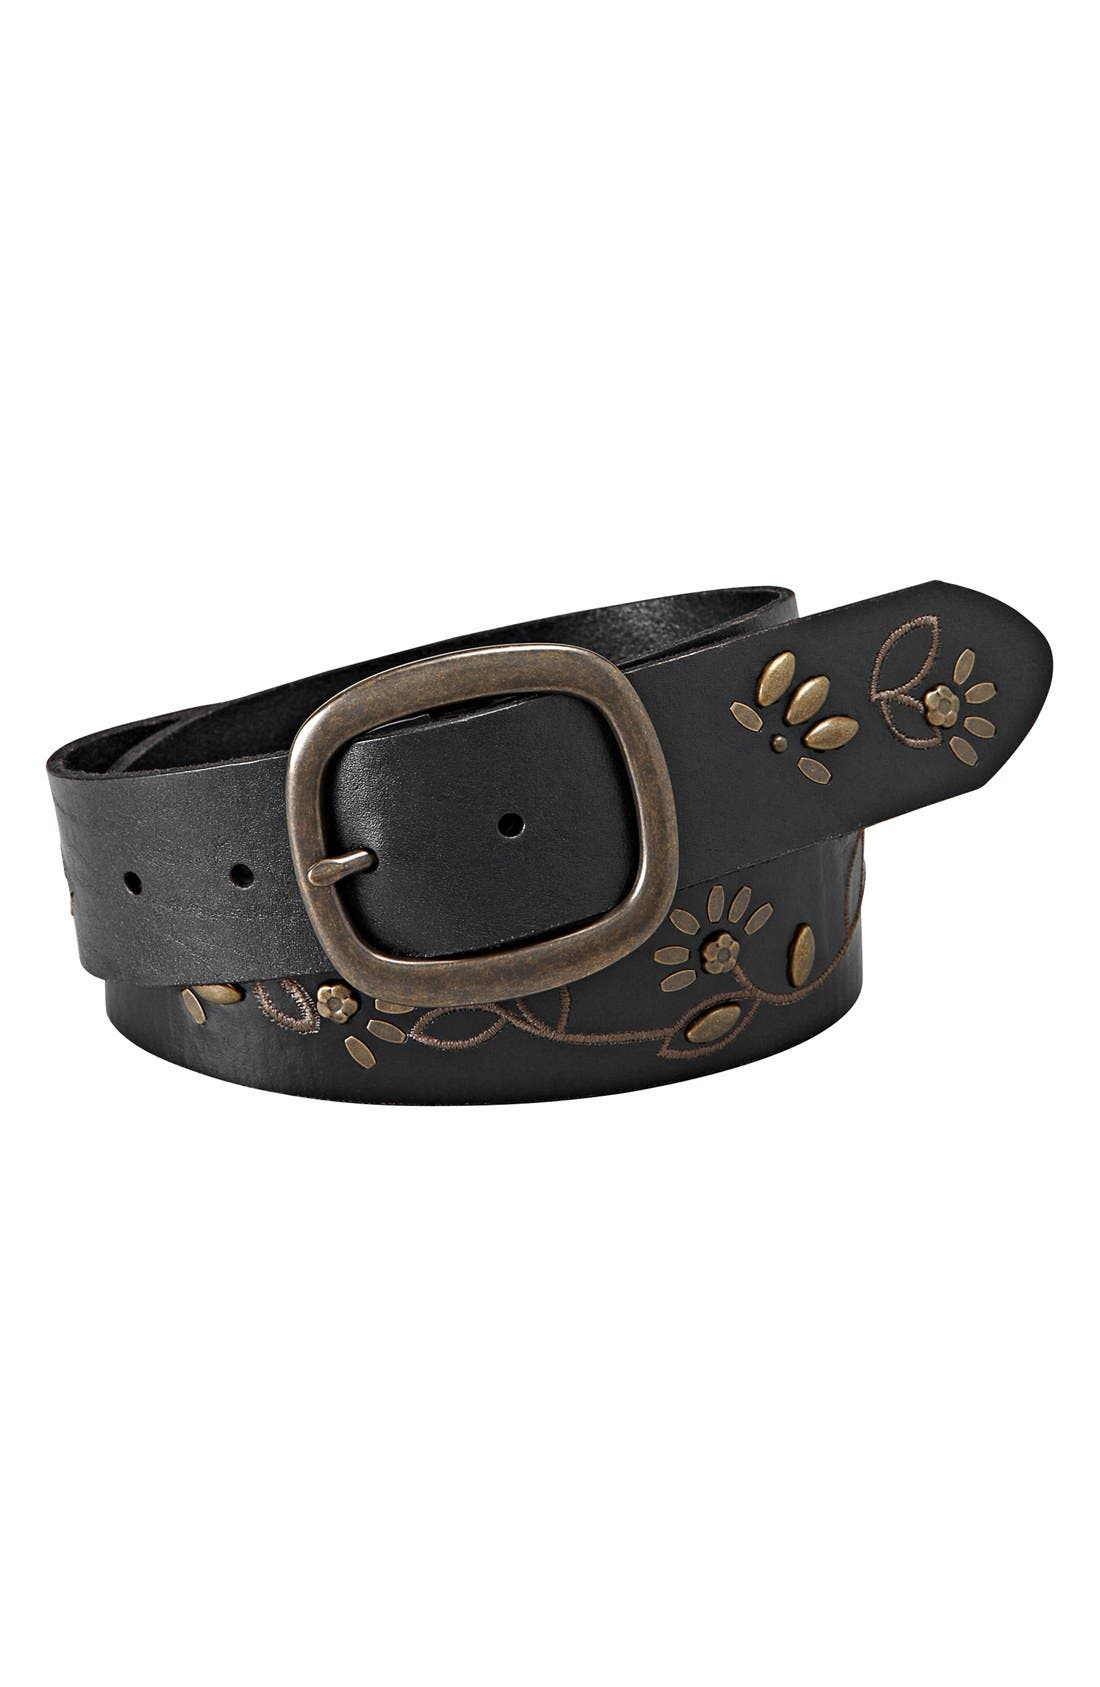 Main Image - Fossil Floral Studded Vine Leather Belt